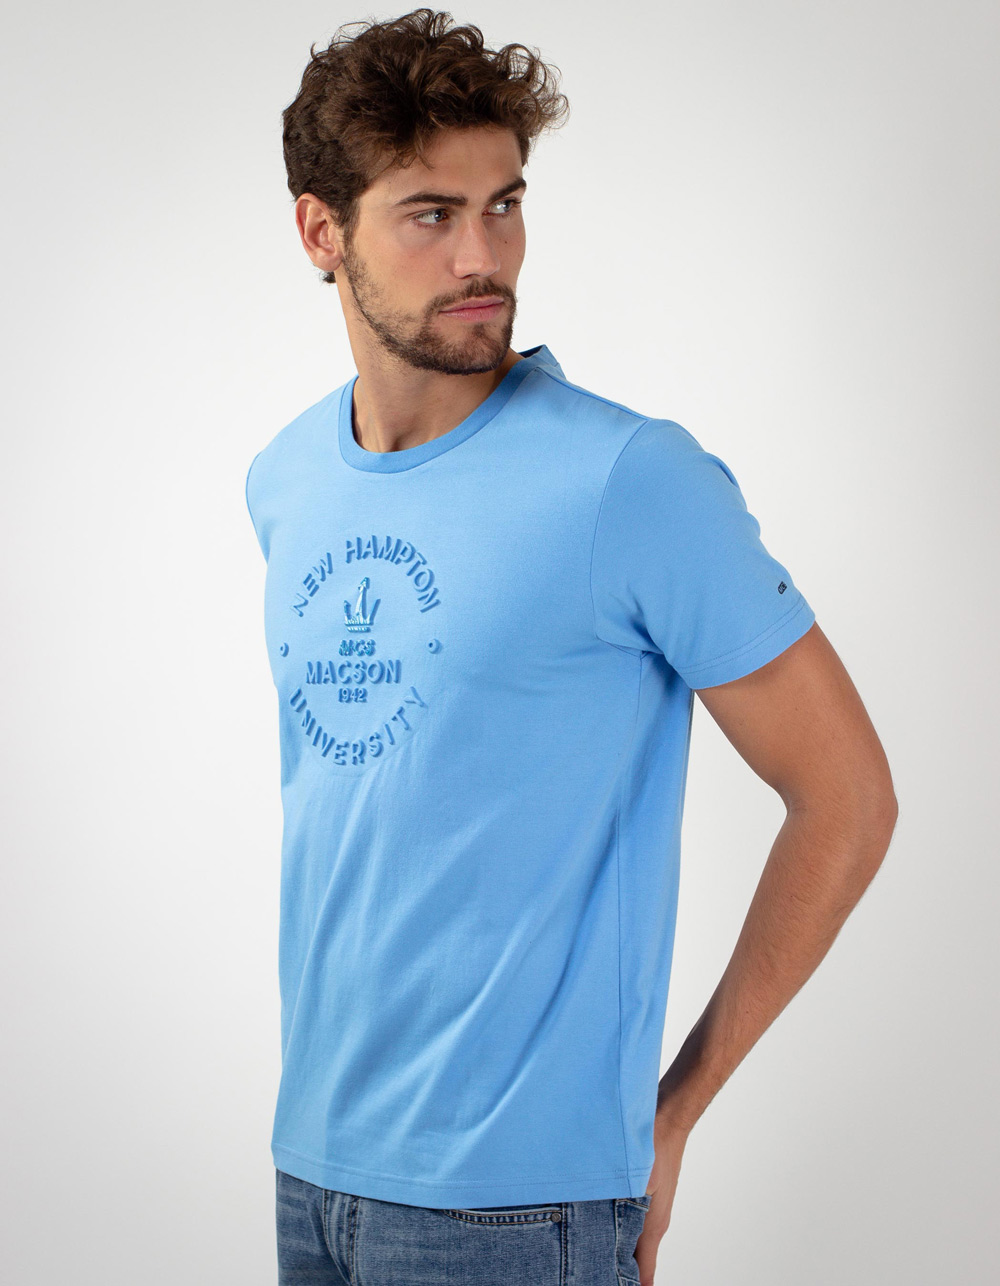 Blue Macson University t-shirt